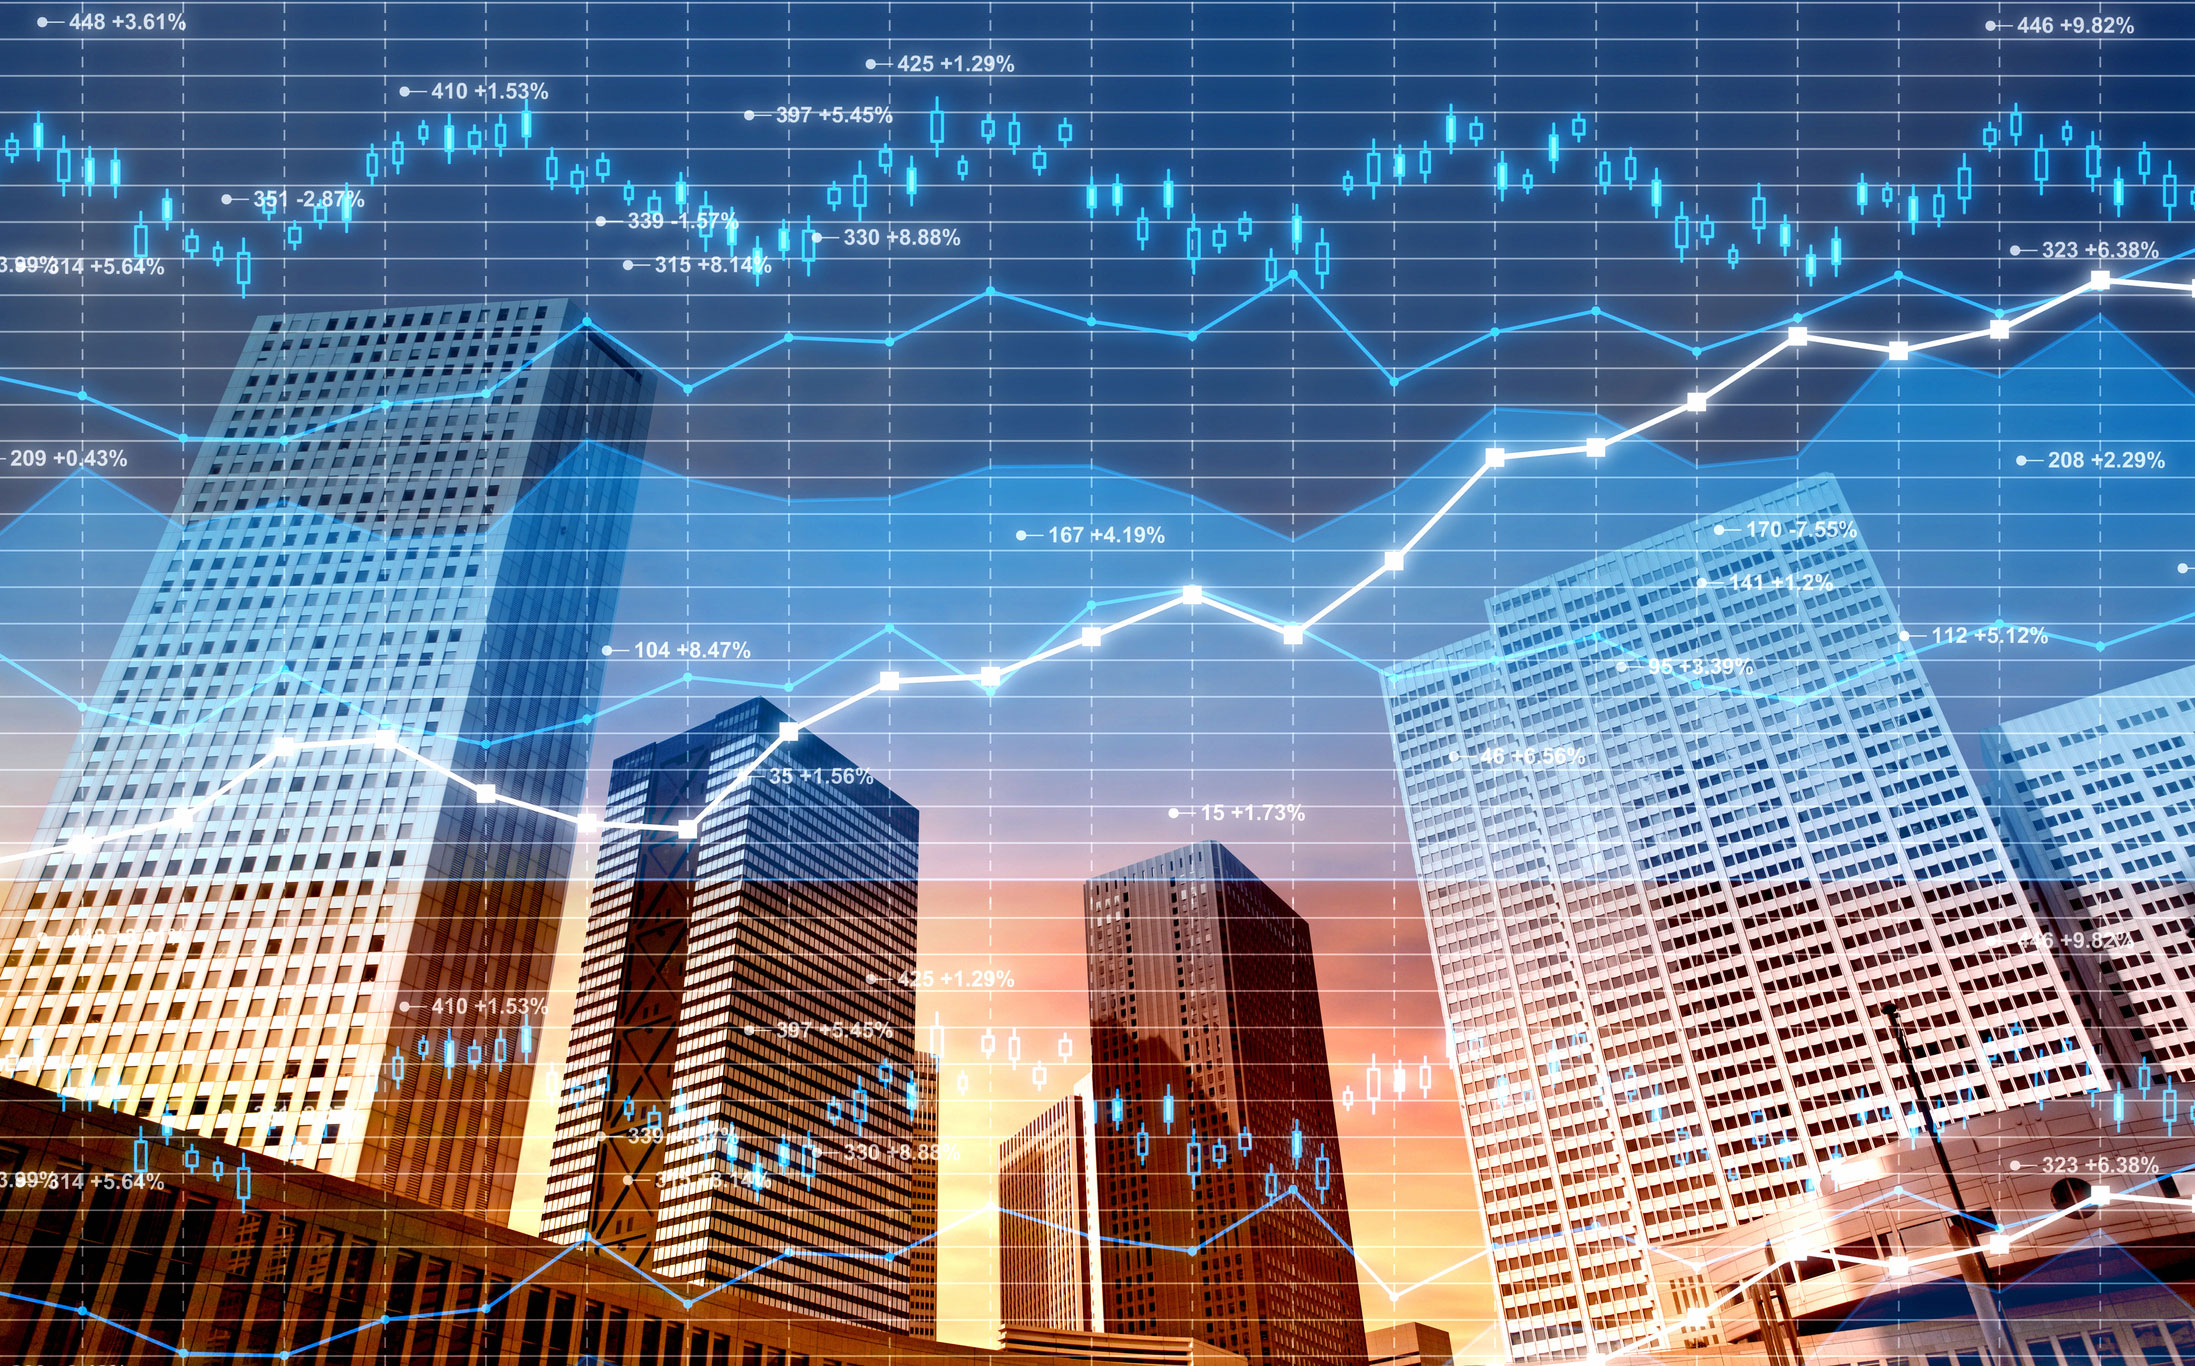 Business-district-stock-market-and-finance-data-on-city-background